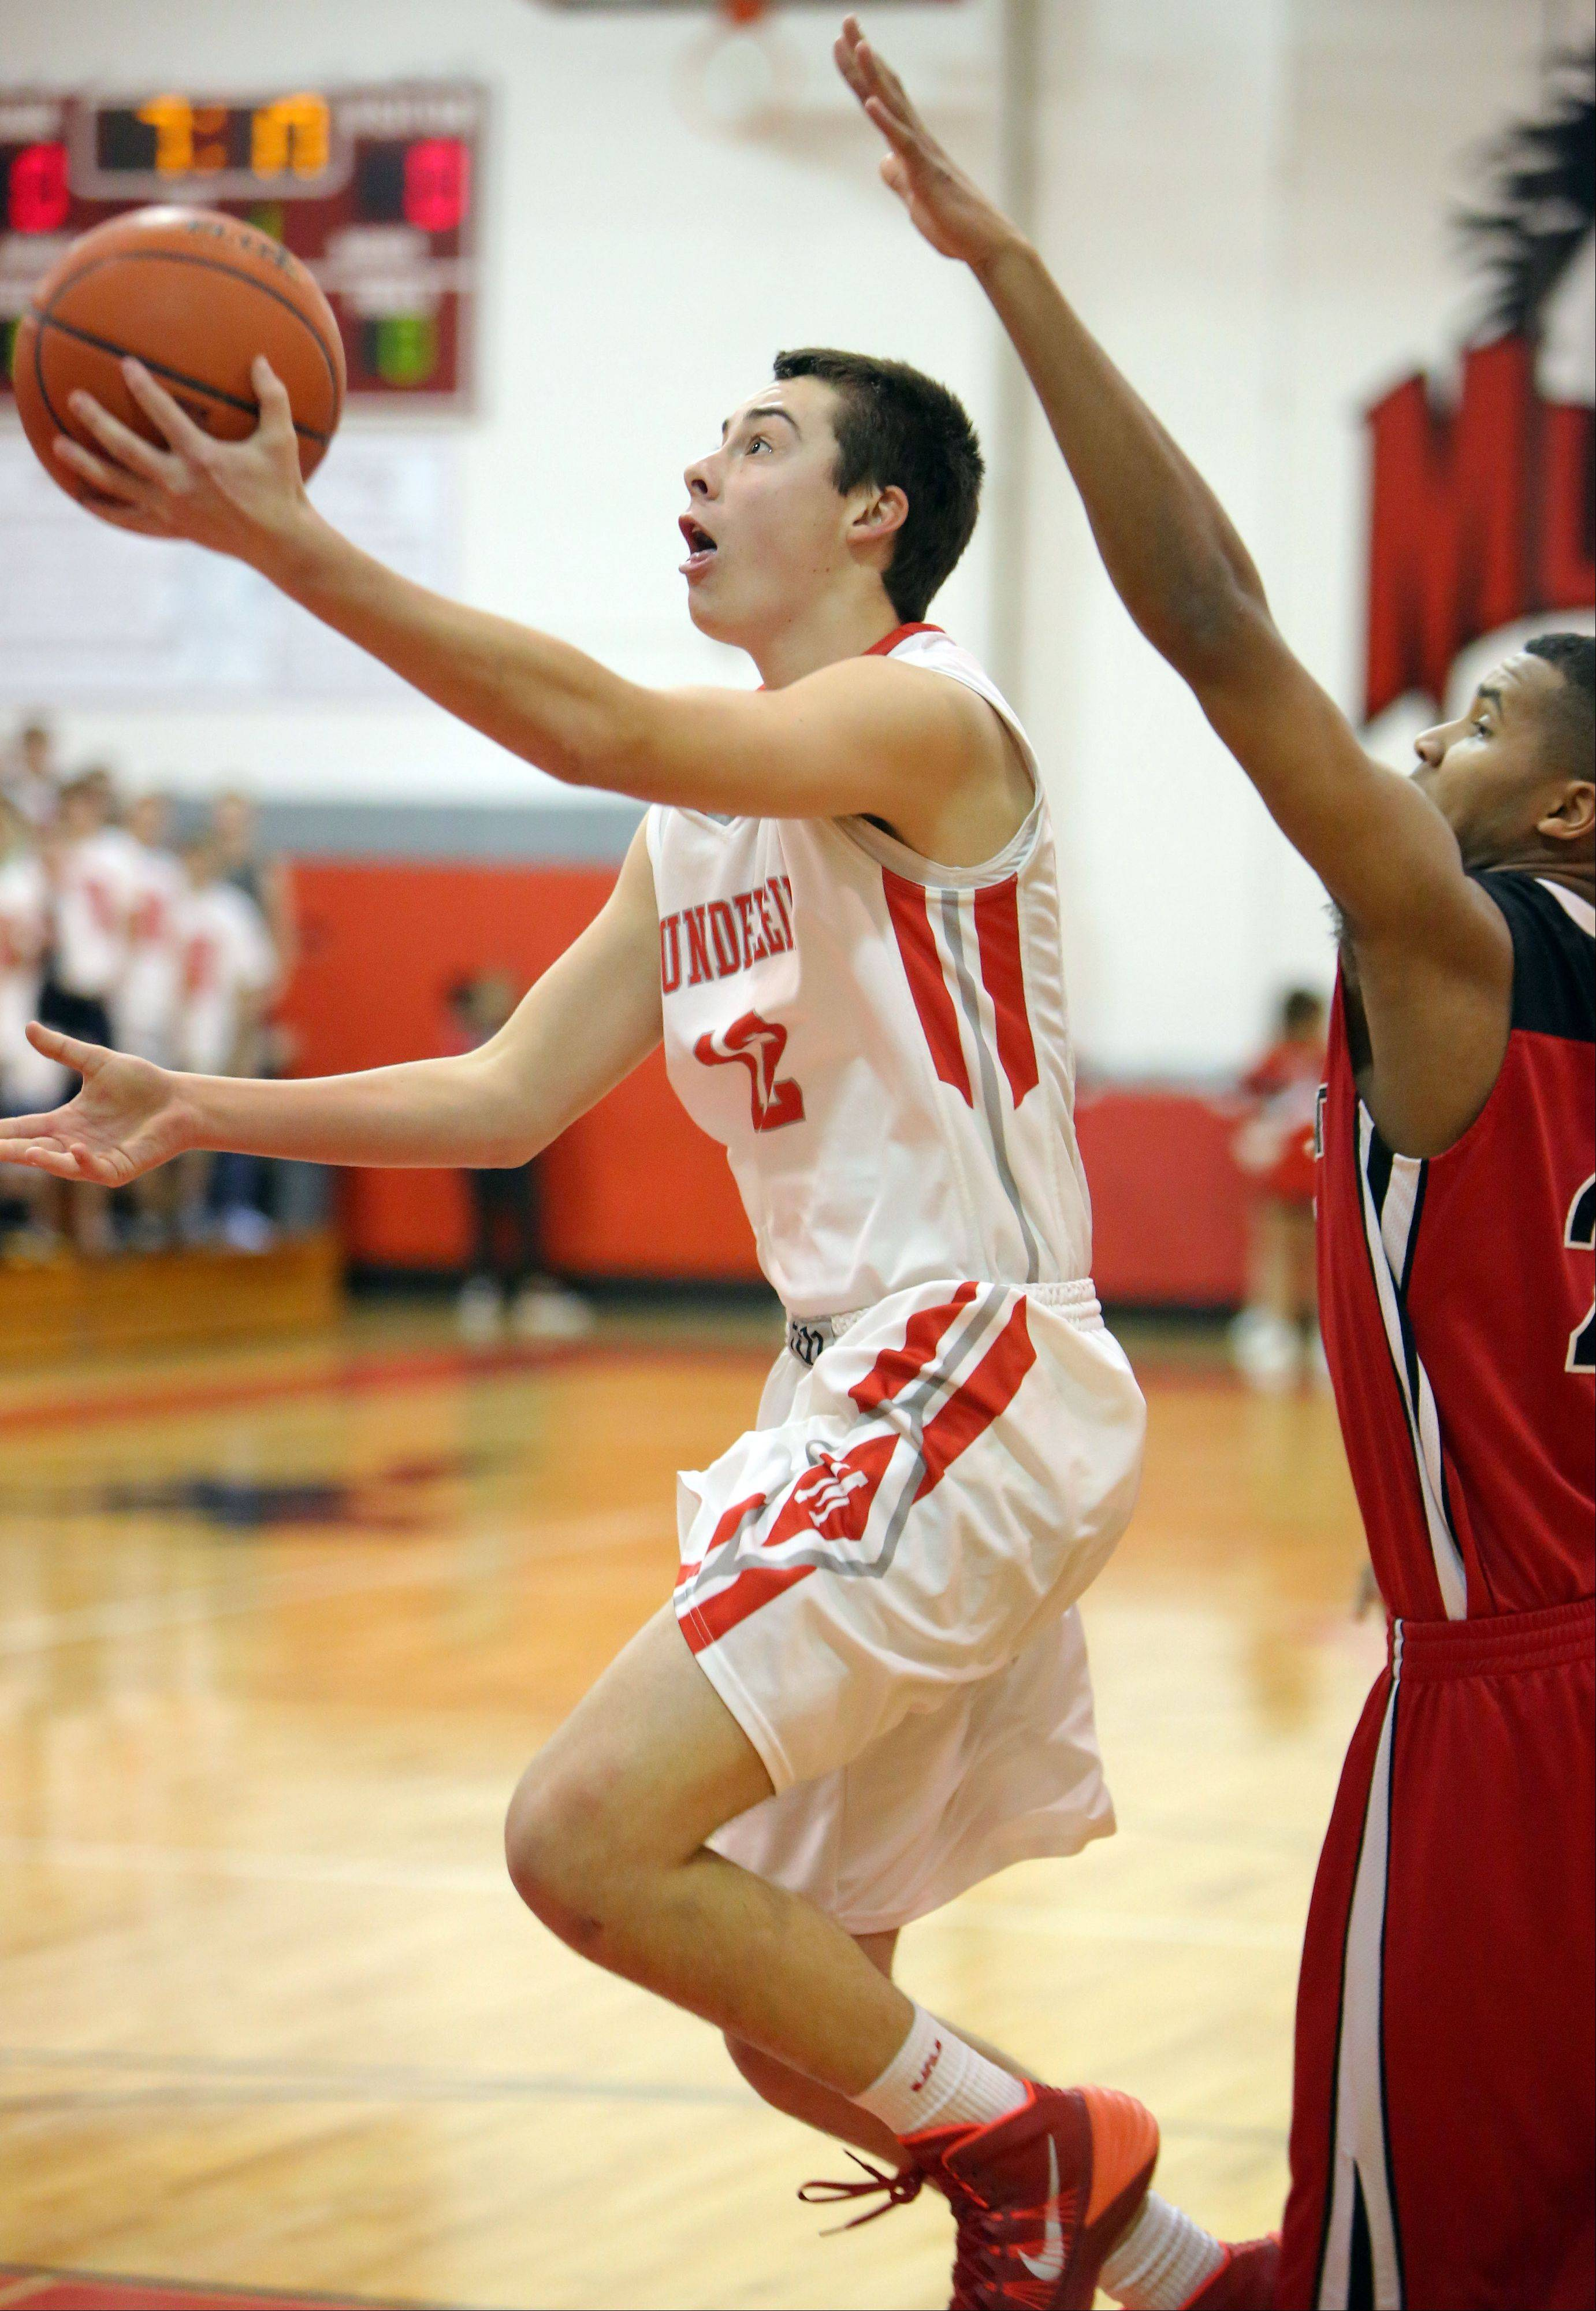 Mundelein's Derek Parola, left, drives to the hoop against Grant's Steve Dunning.